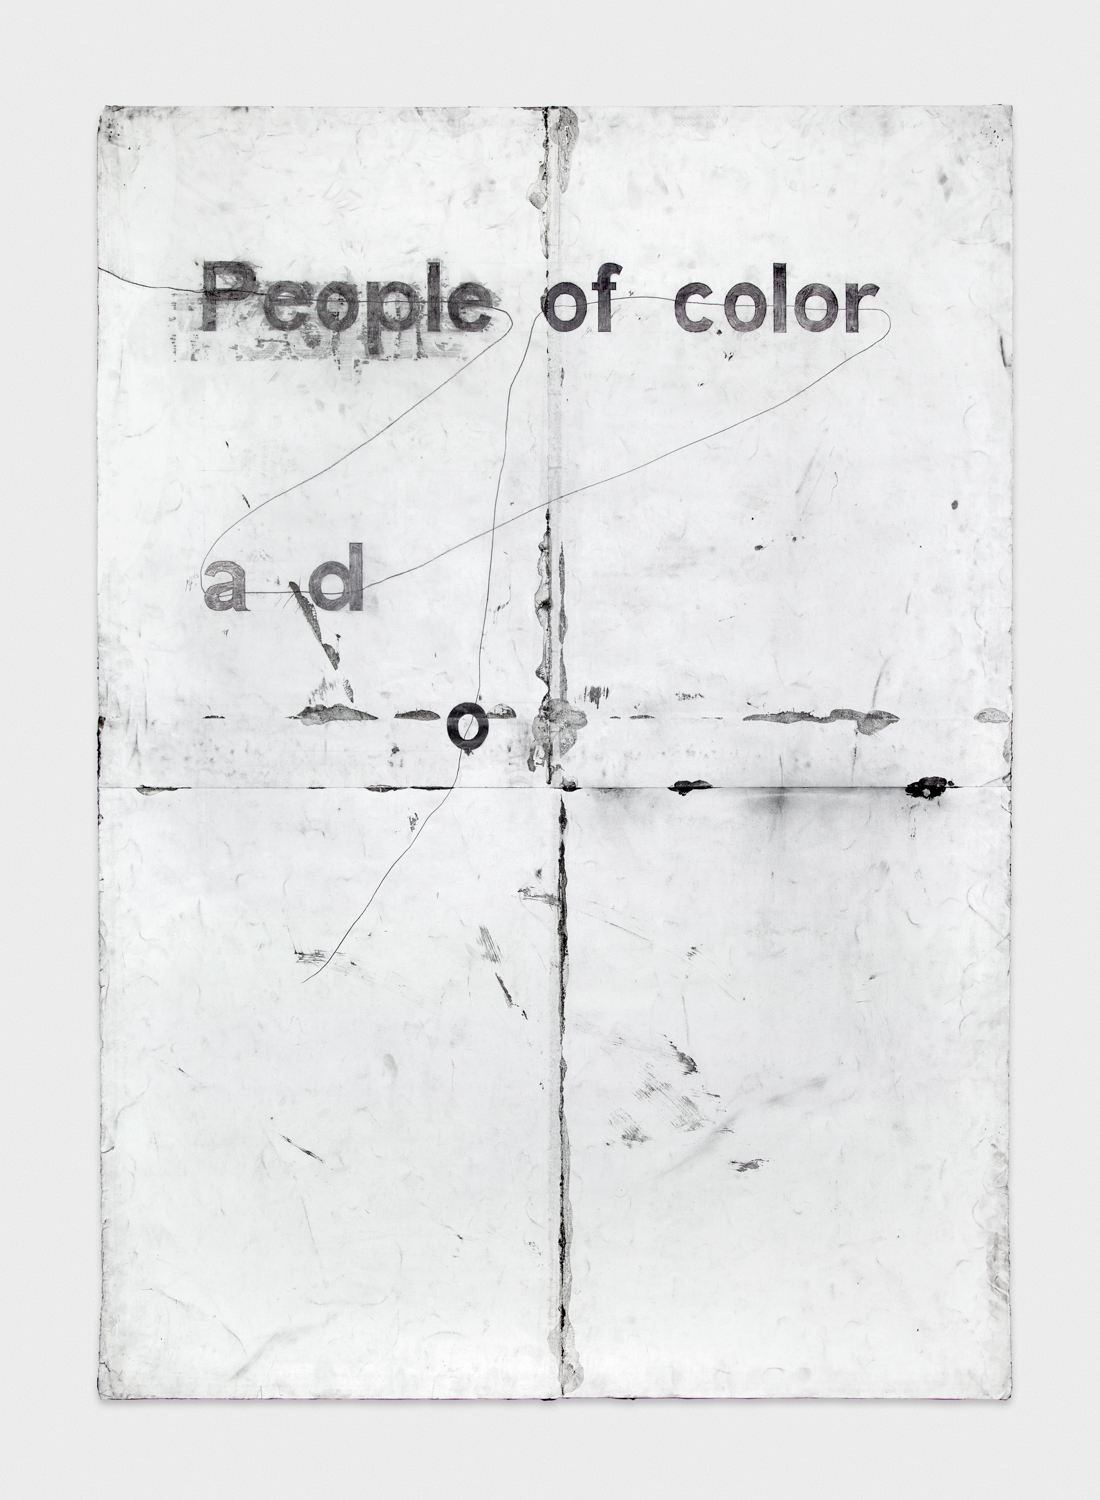 Tony Lewis  People ad roloc foo   2012 Pencil and graphite powder on paper 84h x 60w in TL004